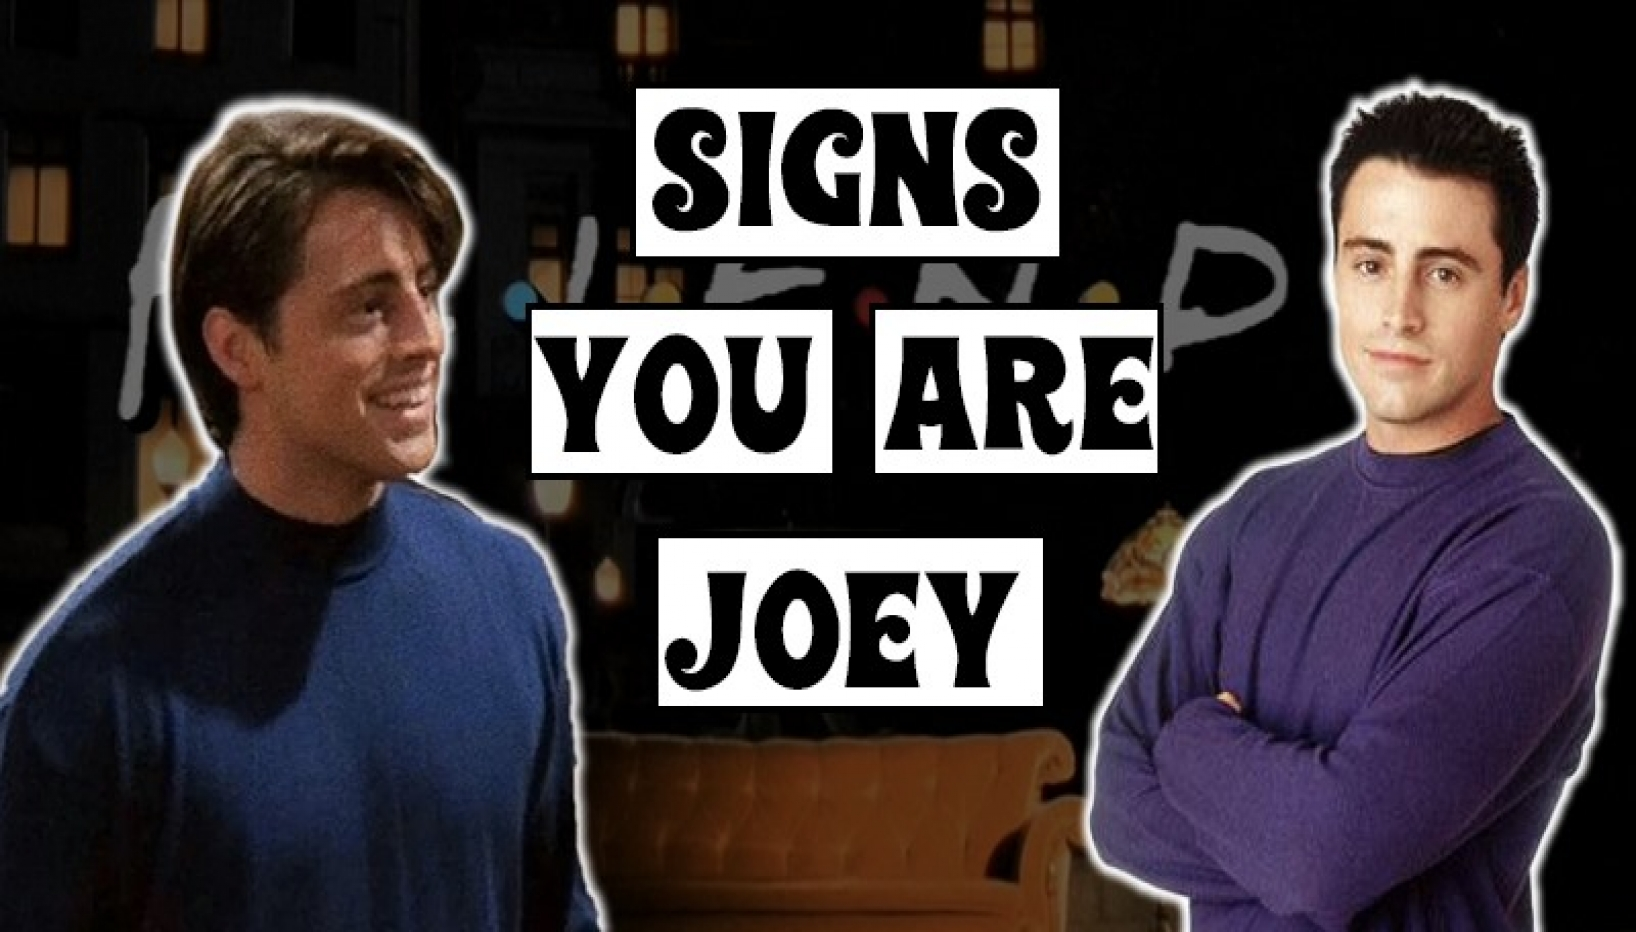 9 Signs You Are Joey From F.R.I.E.N.D.S